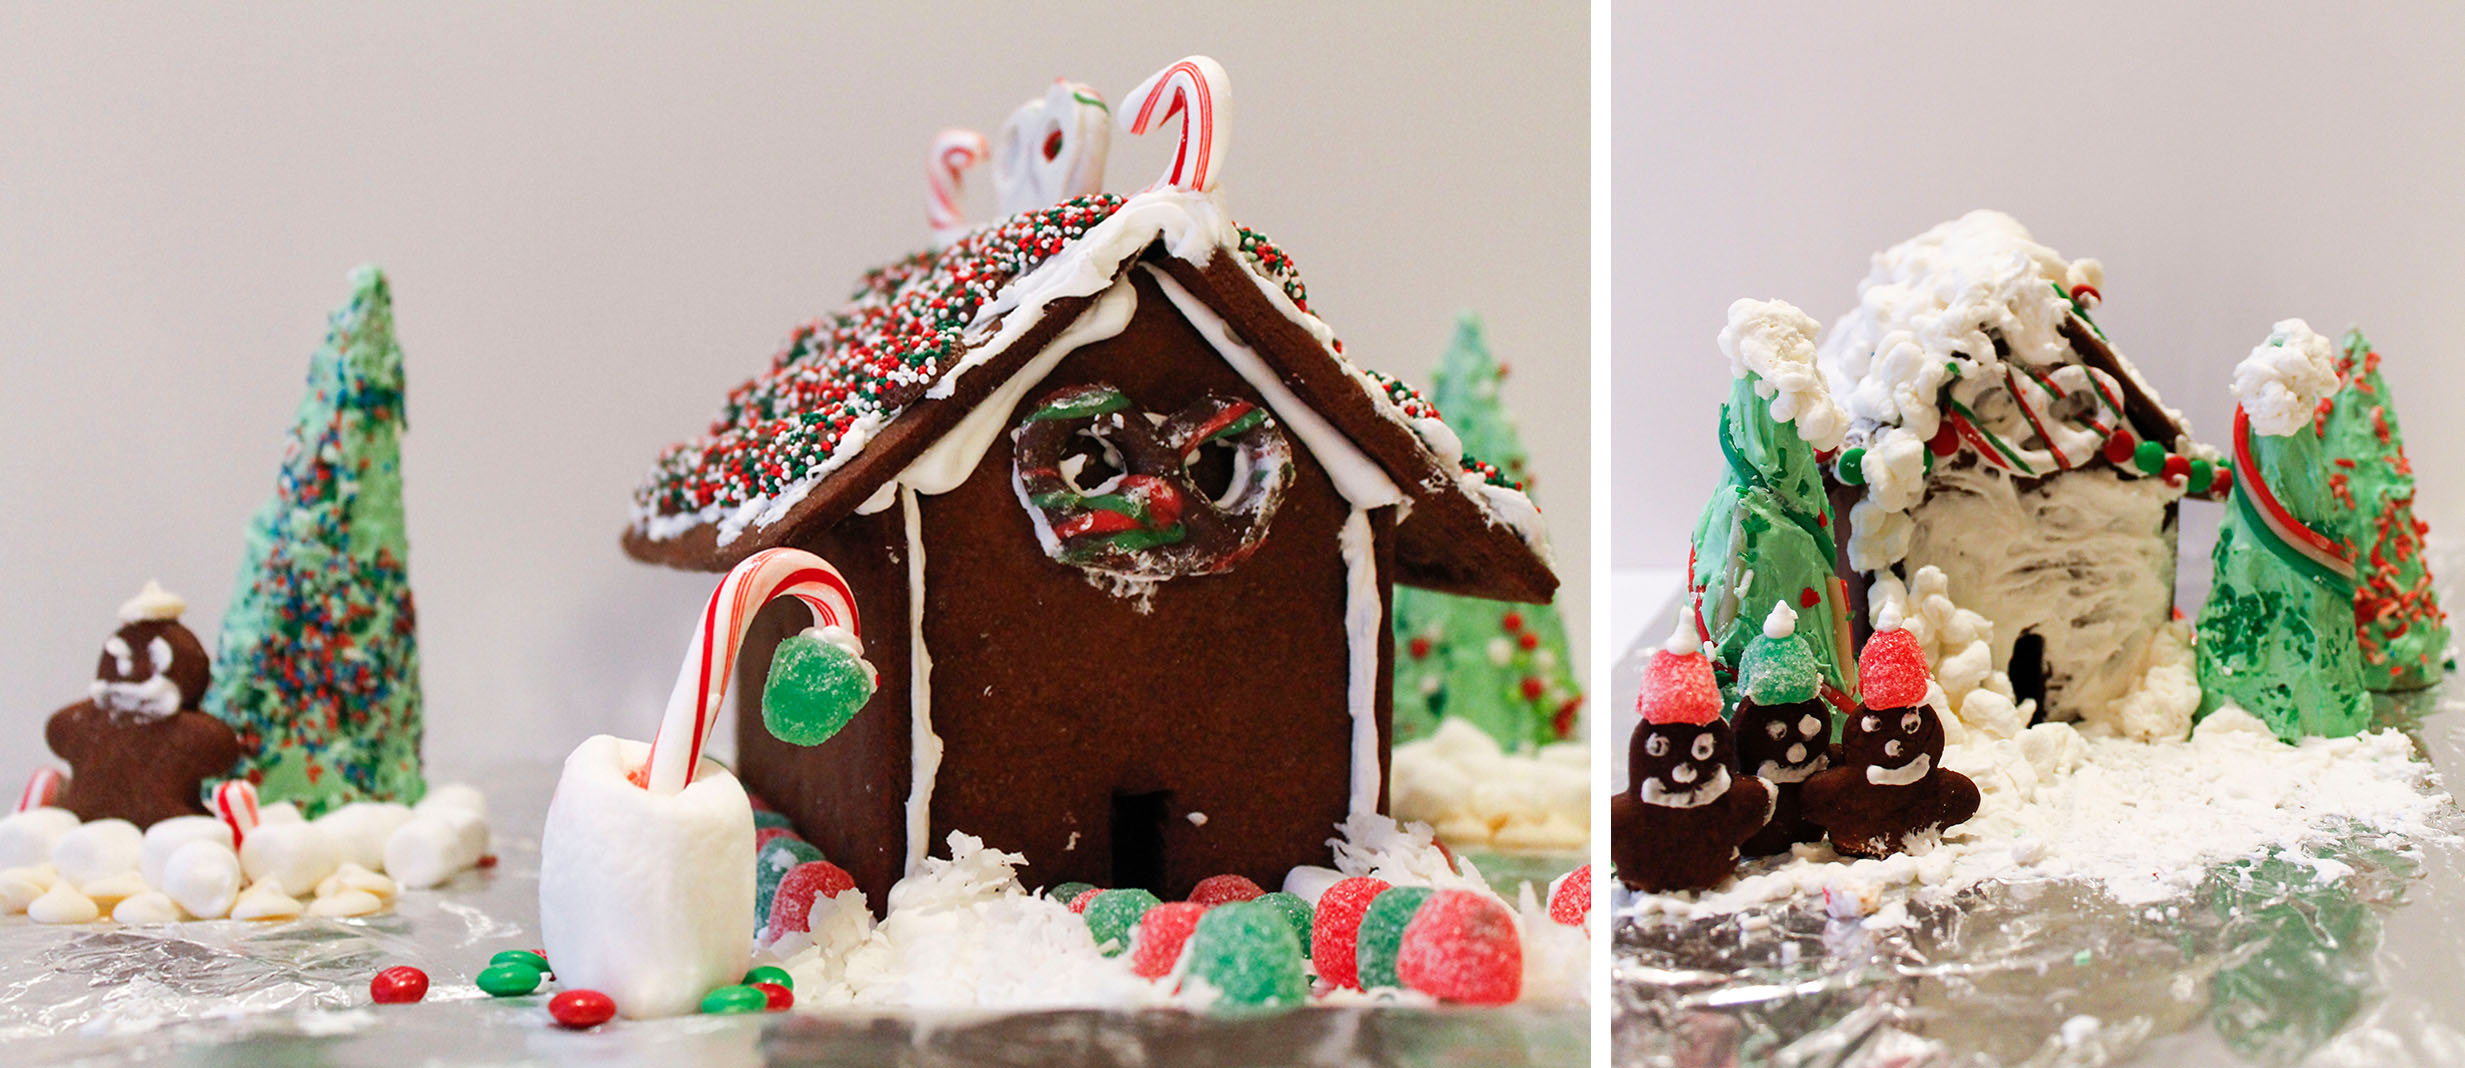 Some other elves made these cute houses: the Gumdrop French Chalet(note the little guy with the beret) and the Snowed-In Cabin!